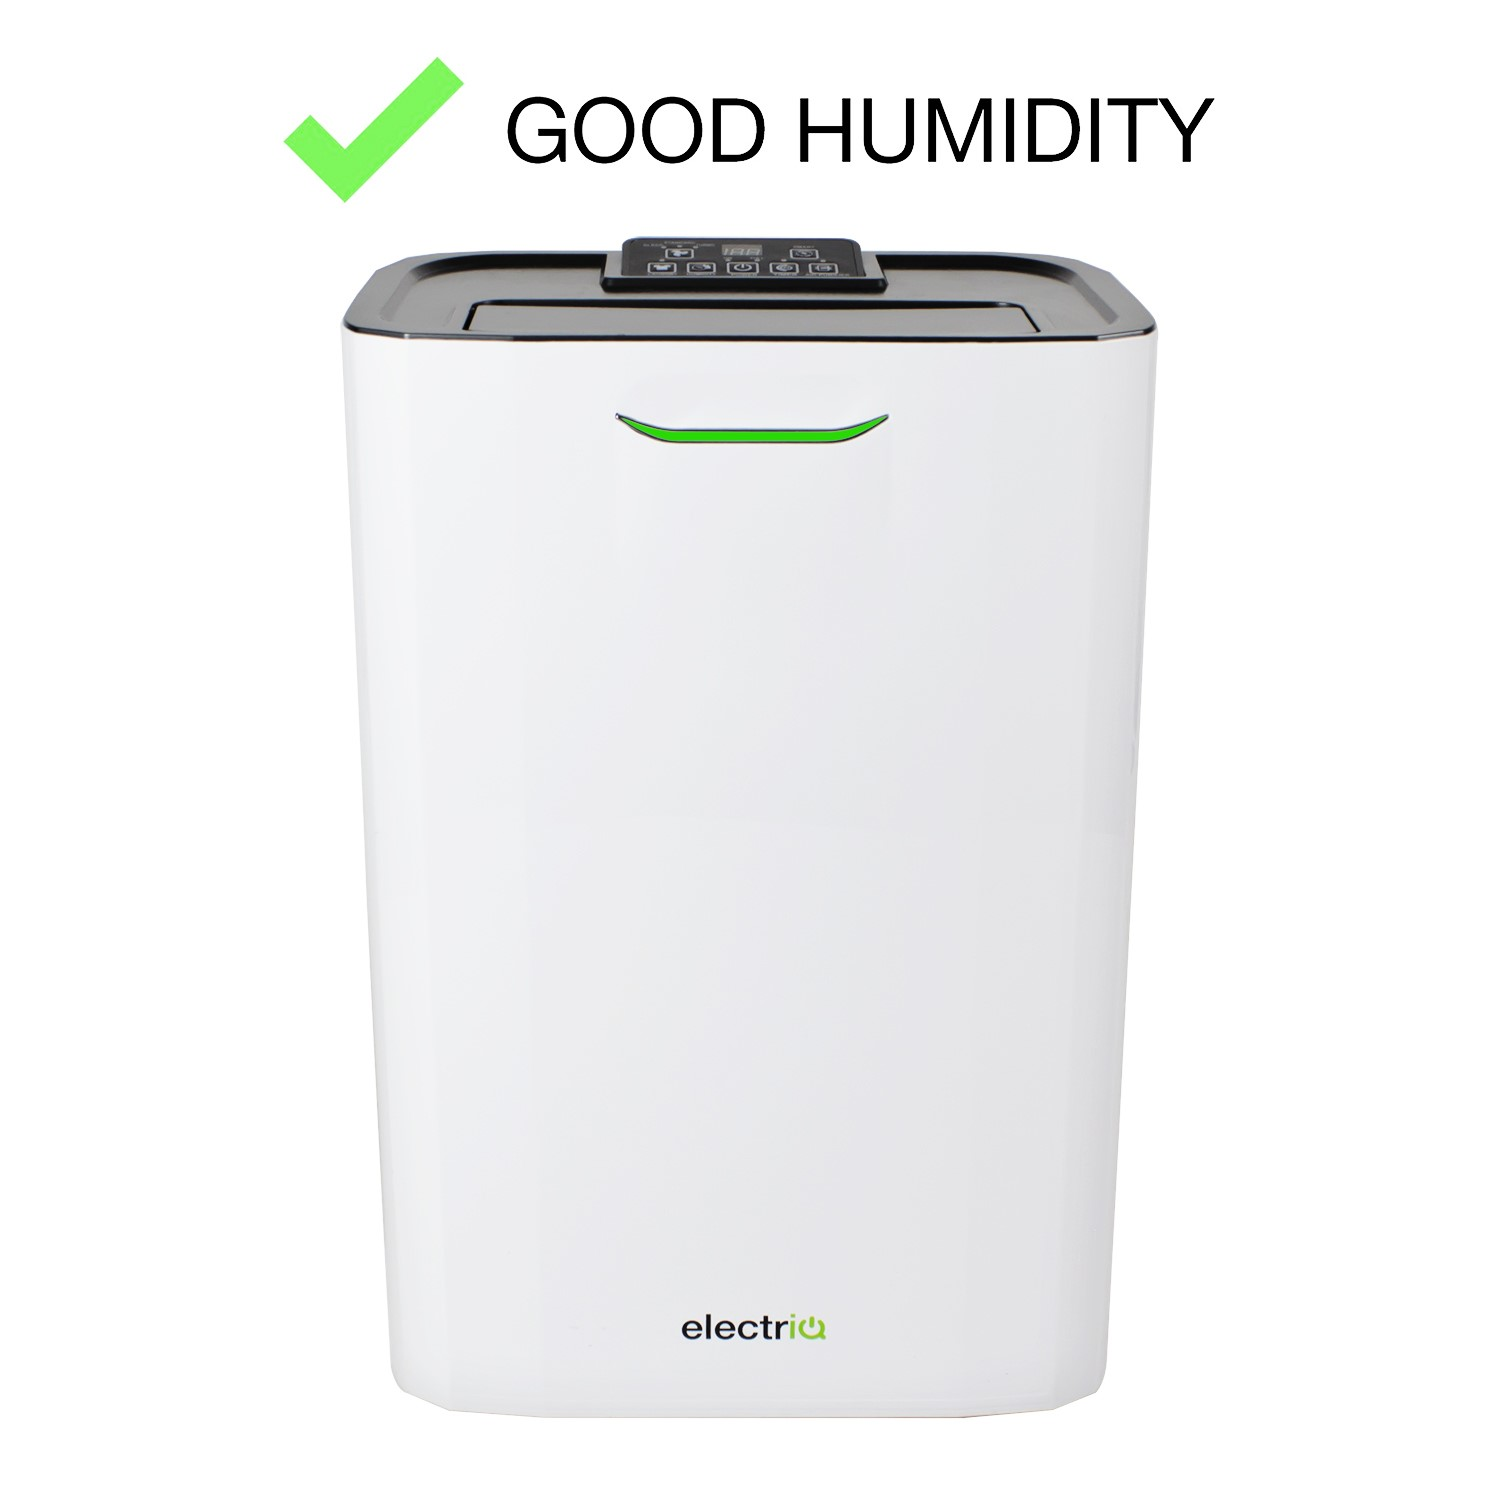 Electriq 8 Litre Fast Dry Desiccant Dehumidifier With Air